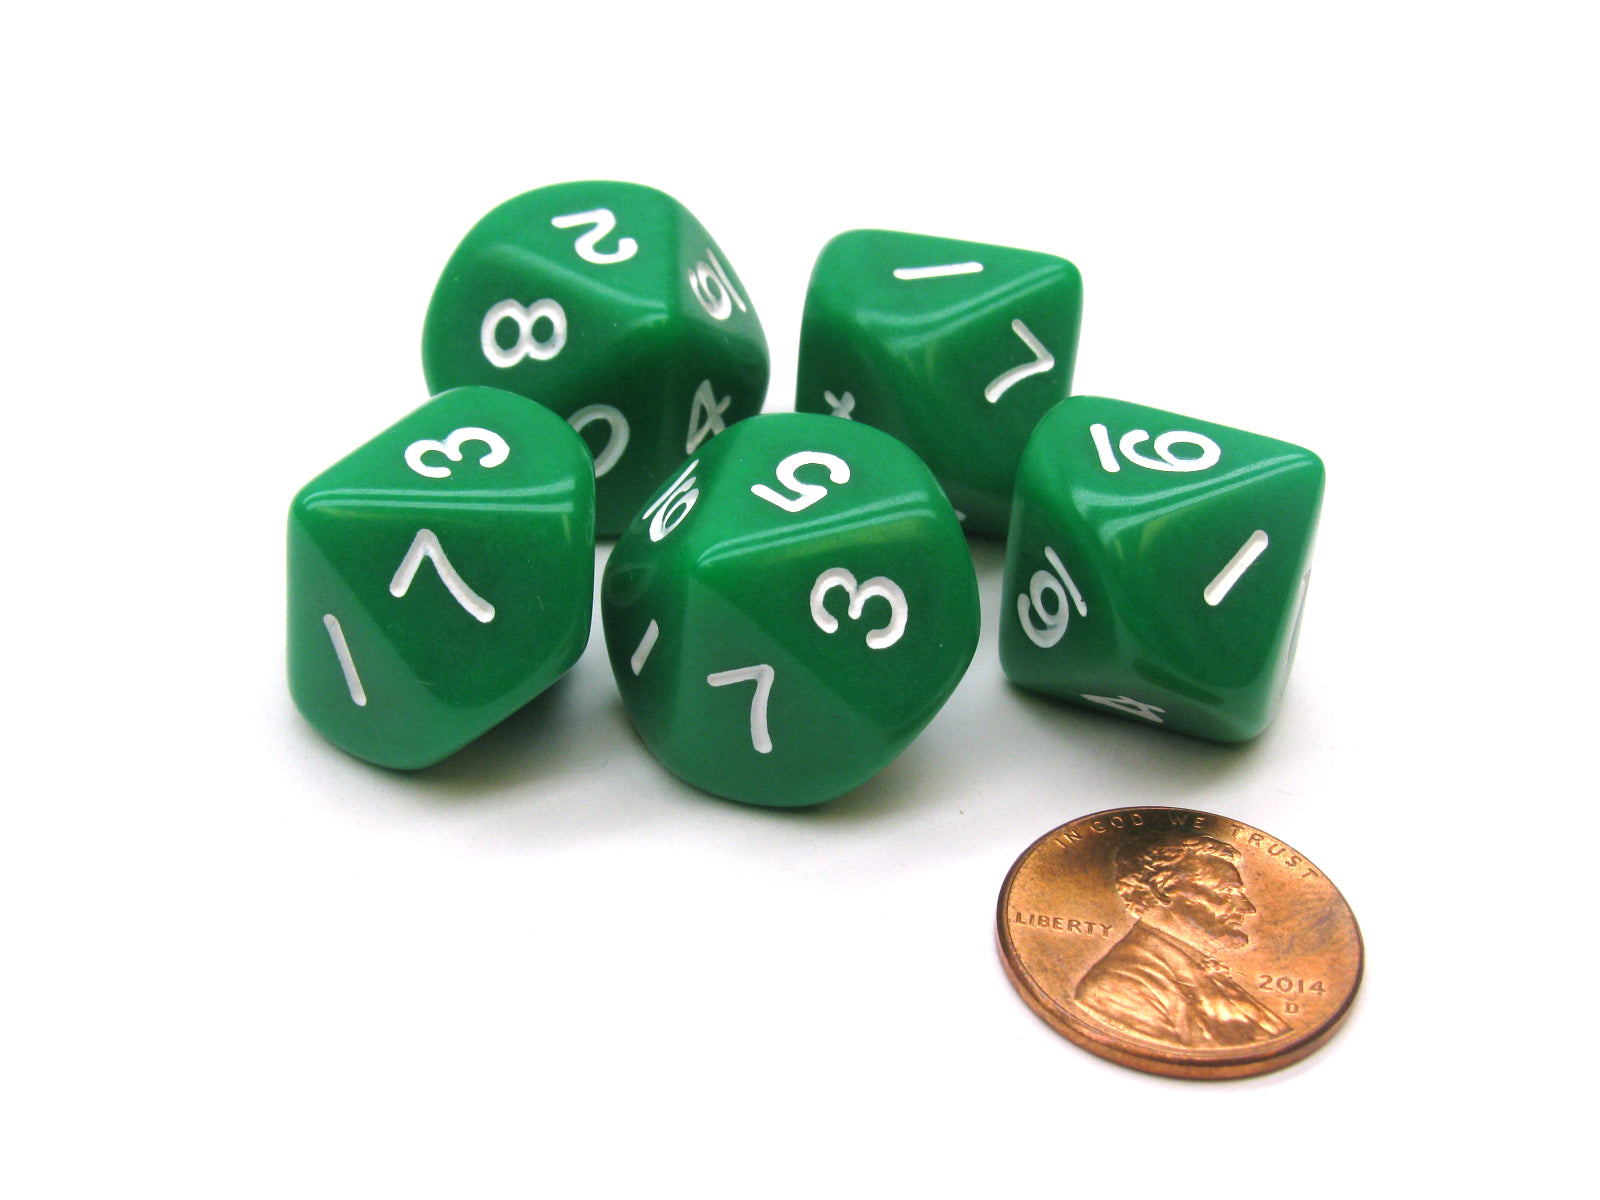 Set of 5 D10 10-Sided 16mm Opaque RPG Dice - Green with White Numbers